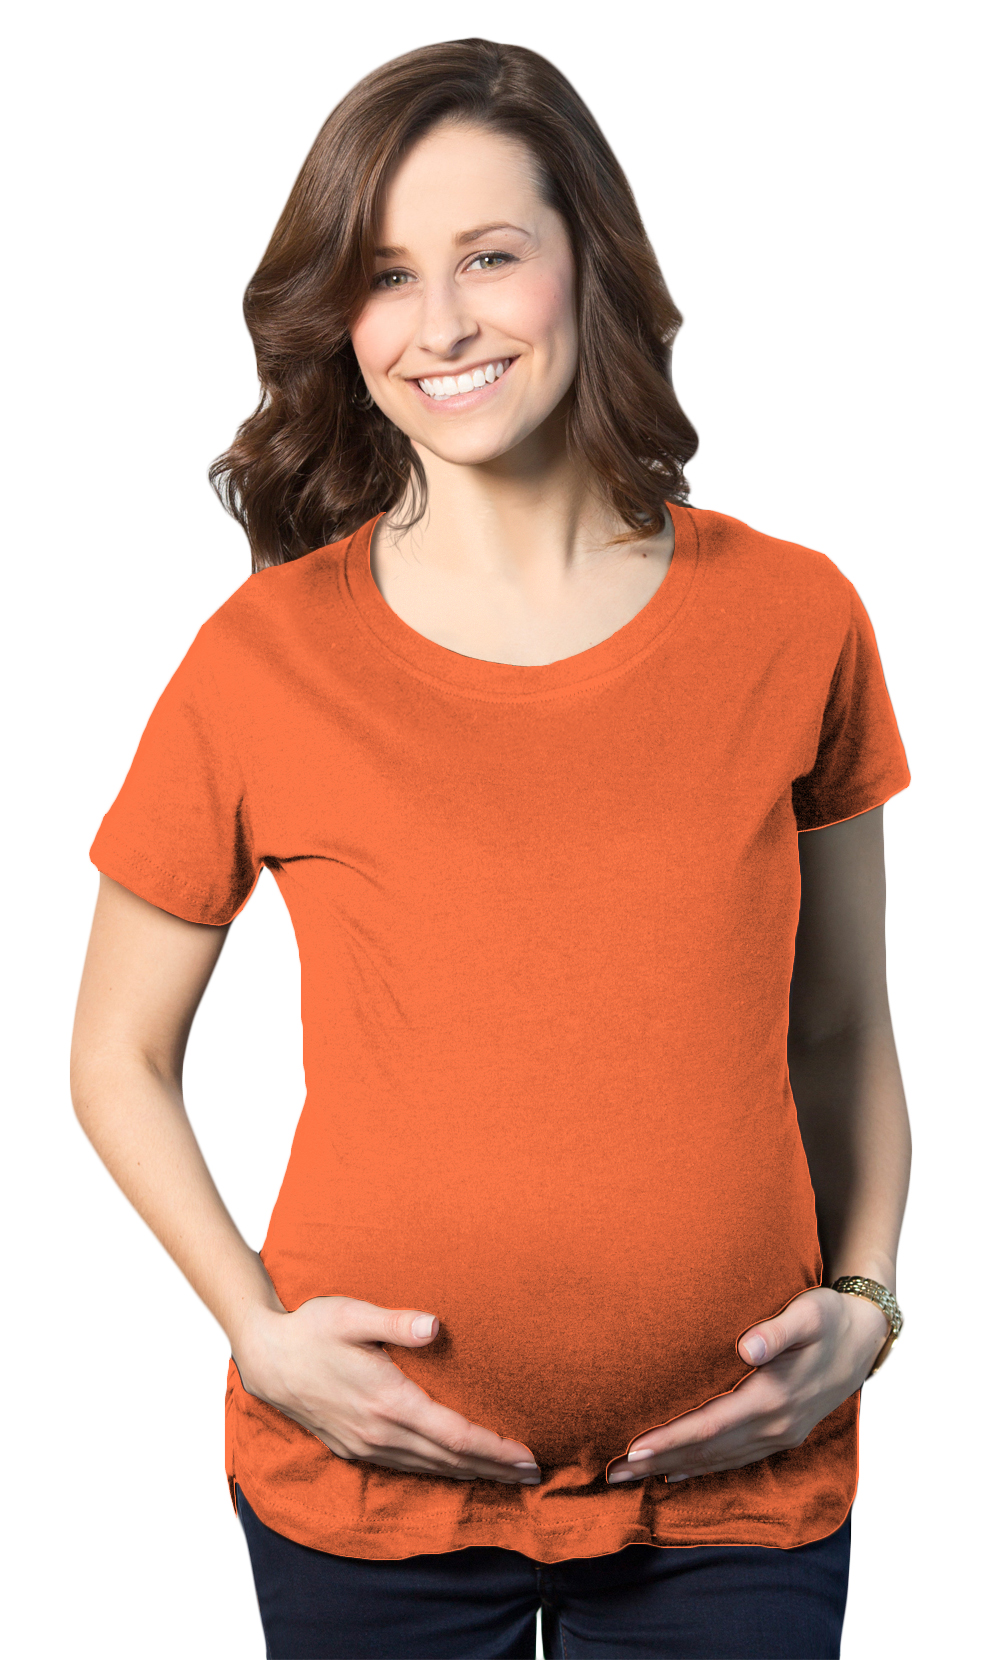 Look and feel your best in Motherhood Maternity clothes, designed to keep you cozy and comfortable during your entire pregnancy. Shopping online is easy with free shipping every day and free in-store returns. Start browsing today and discover Motherhood, the best maternity brand for the mom-to-be.